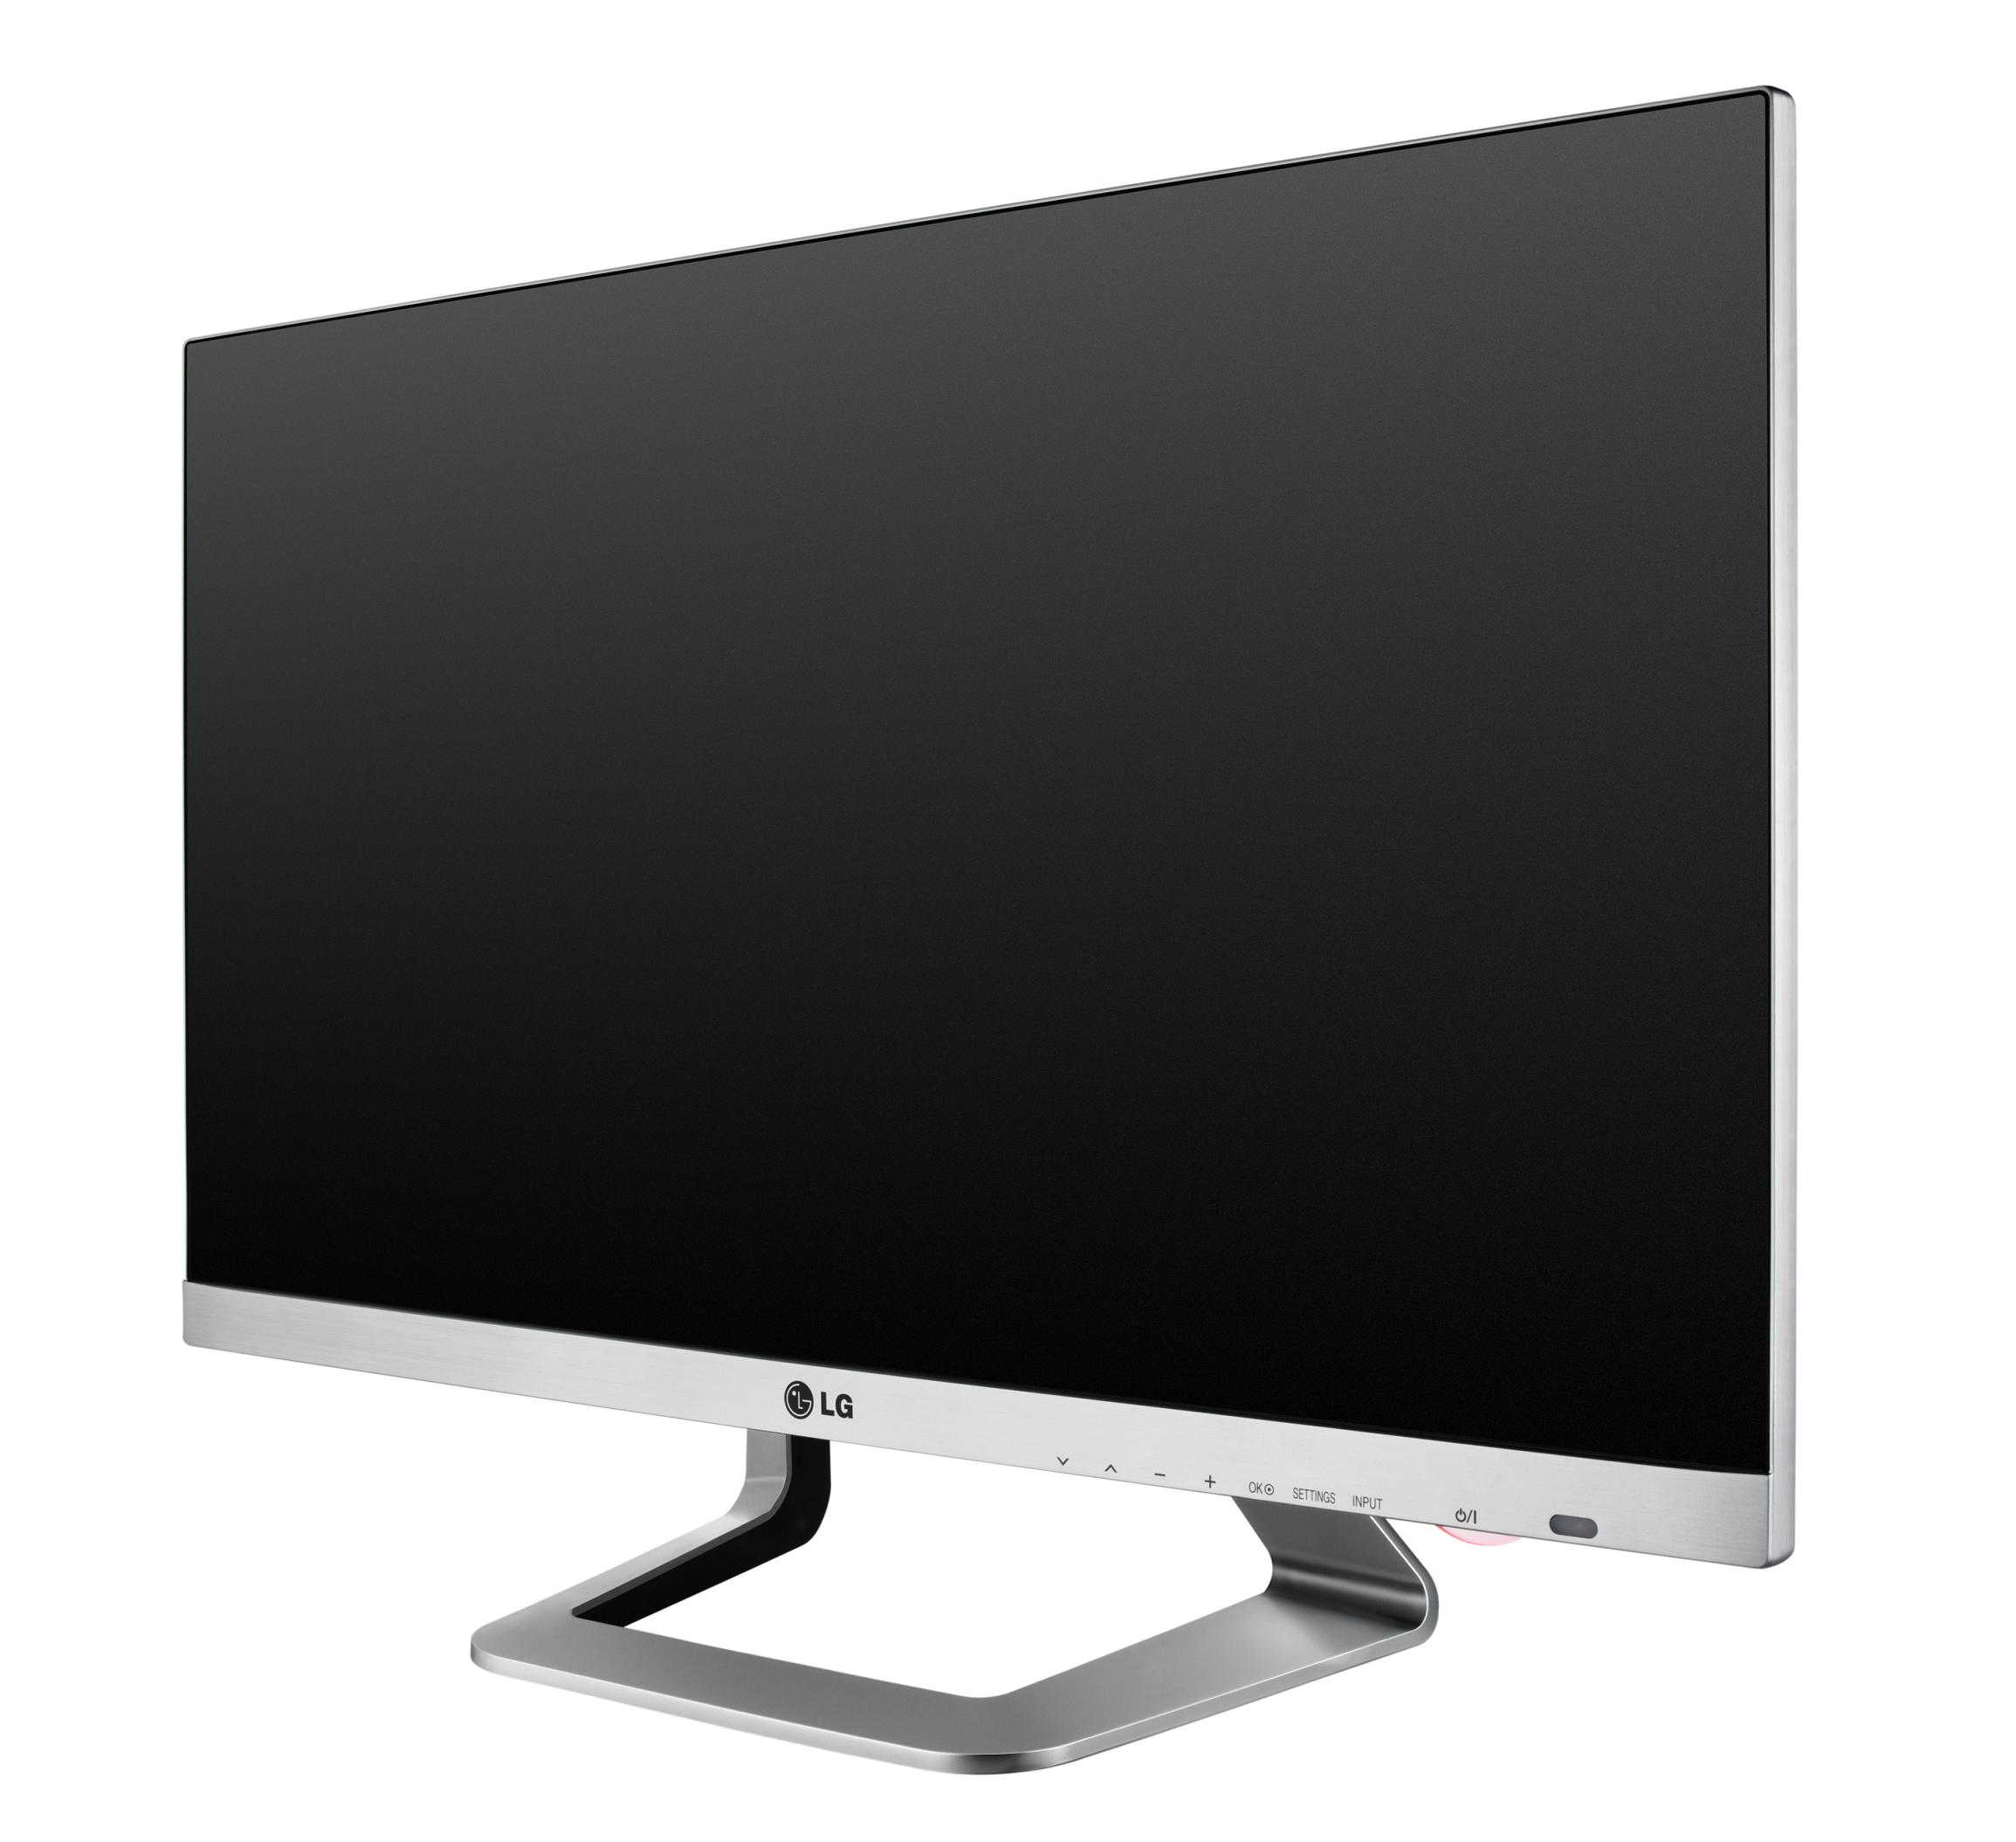 A right-side view of LG Personal Smart TV model TM2792